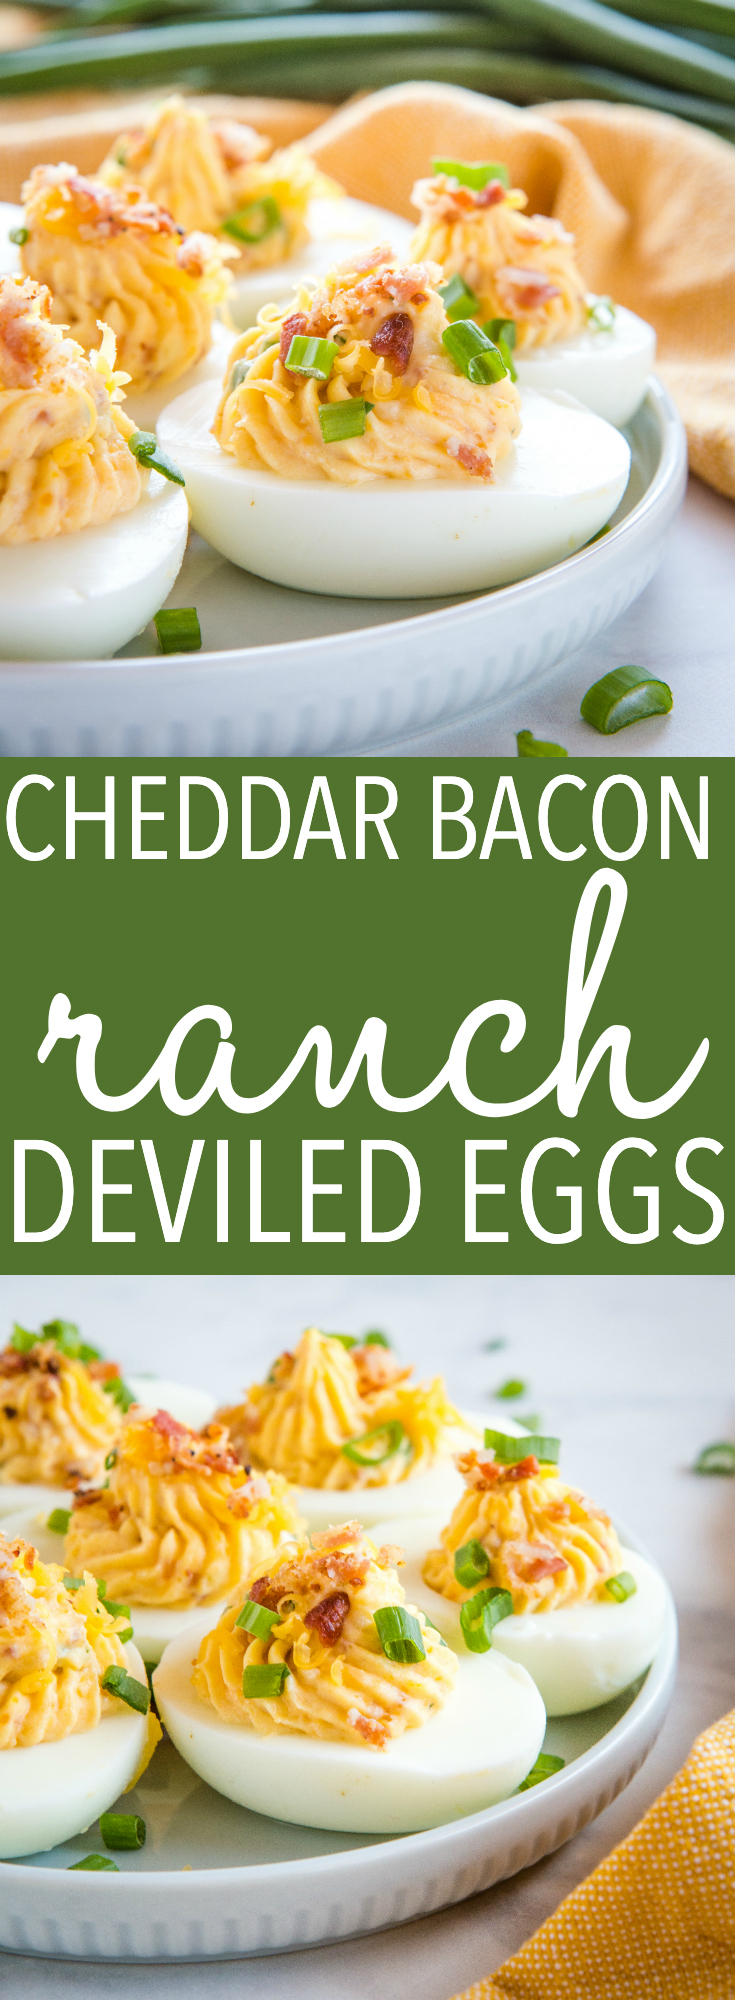 These Best Ever Cheddar Bacon Ranch Deviled Eggs are perfect for Easter! Made with sharp cheddar, crispy bacon and ranch - they're so easy to make! Recipe from thebusybaker.ca! #cheddar #bacon #ranch #deviledeggs #easter #snack #appetizer #dinner #entertaining #spring #eggs #treat #classic #recipe via @busybakerblog